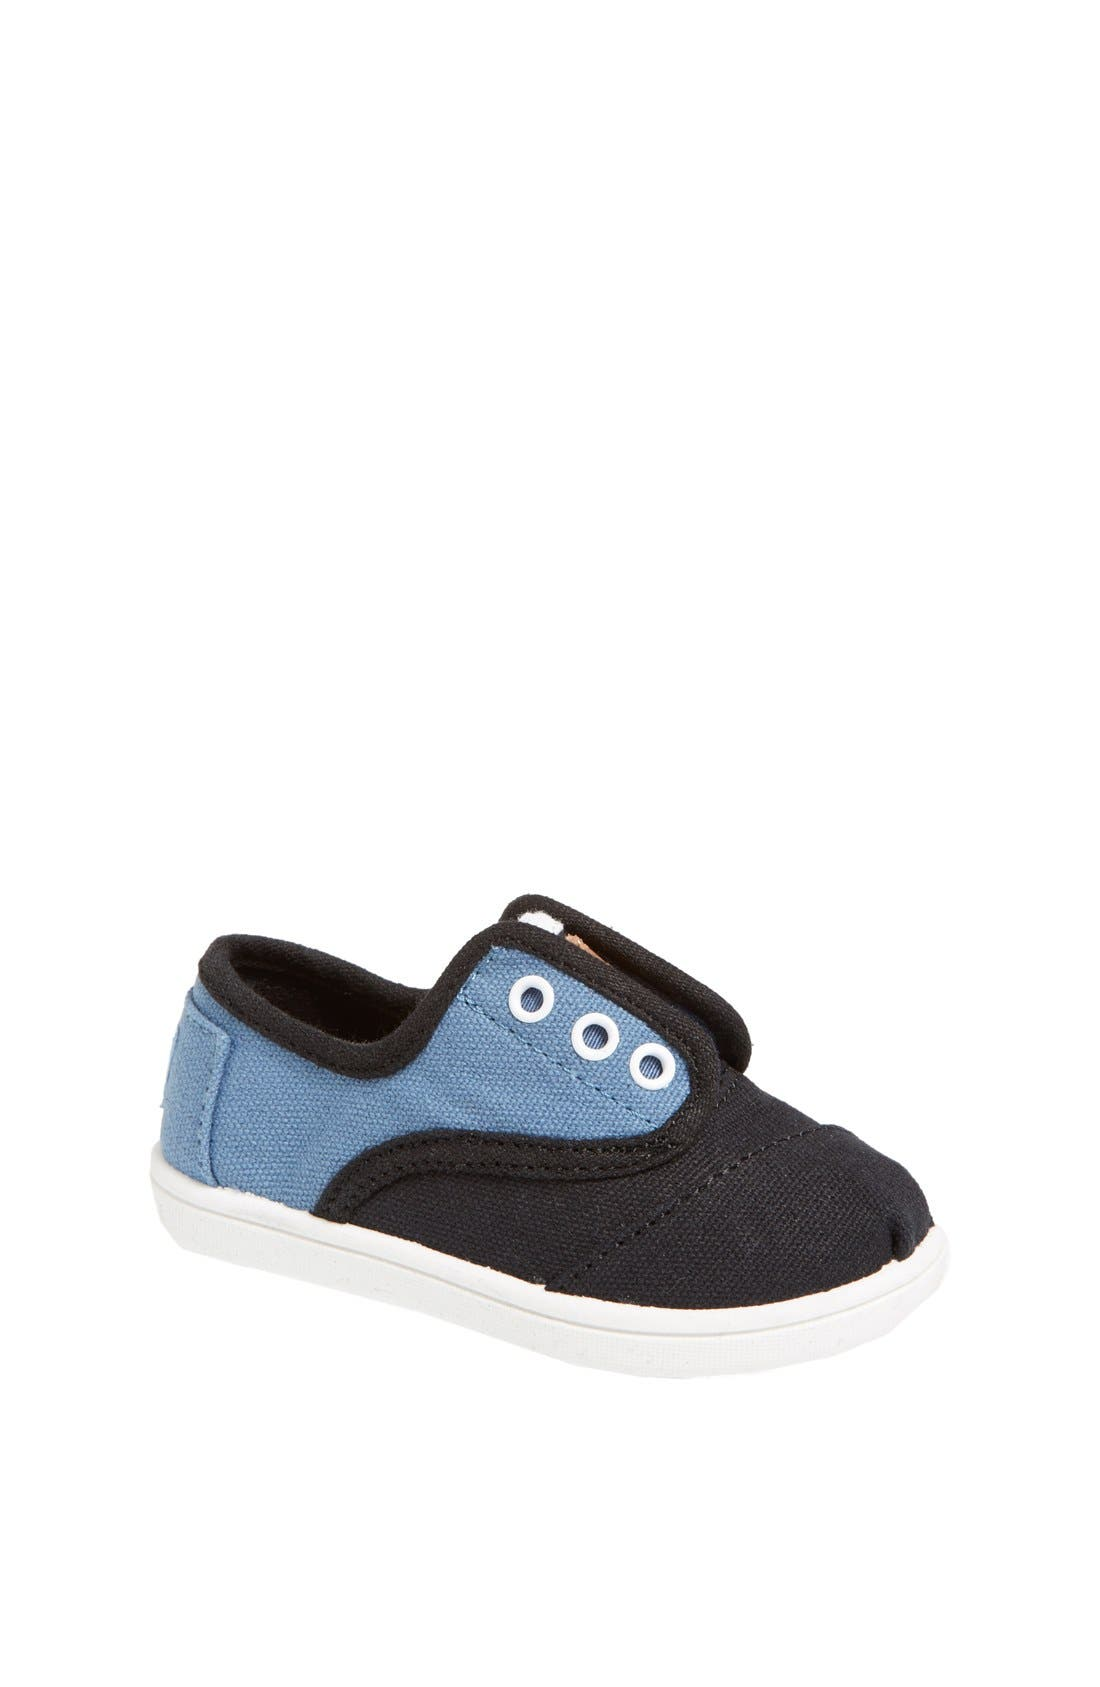 Alternate Image 1 Selected - TOMS 'Cordones - Tiny' Sneaker (Baby, Walker & Toddler)